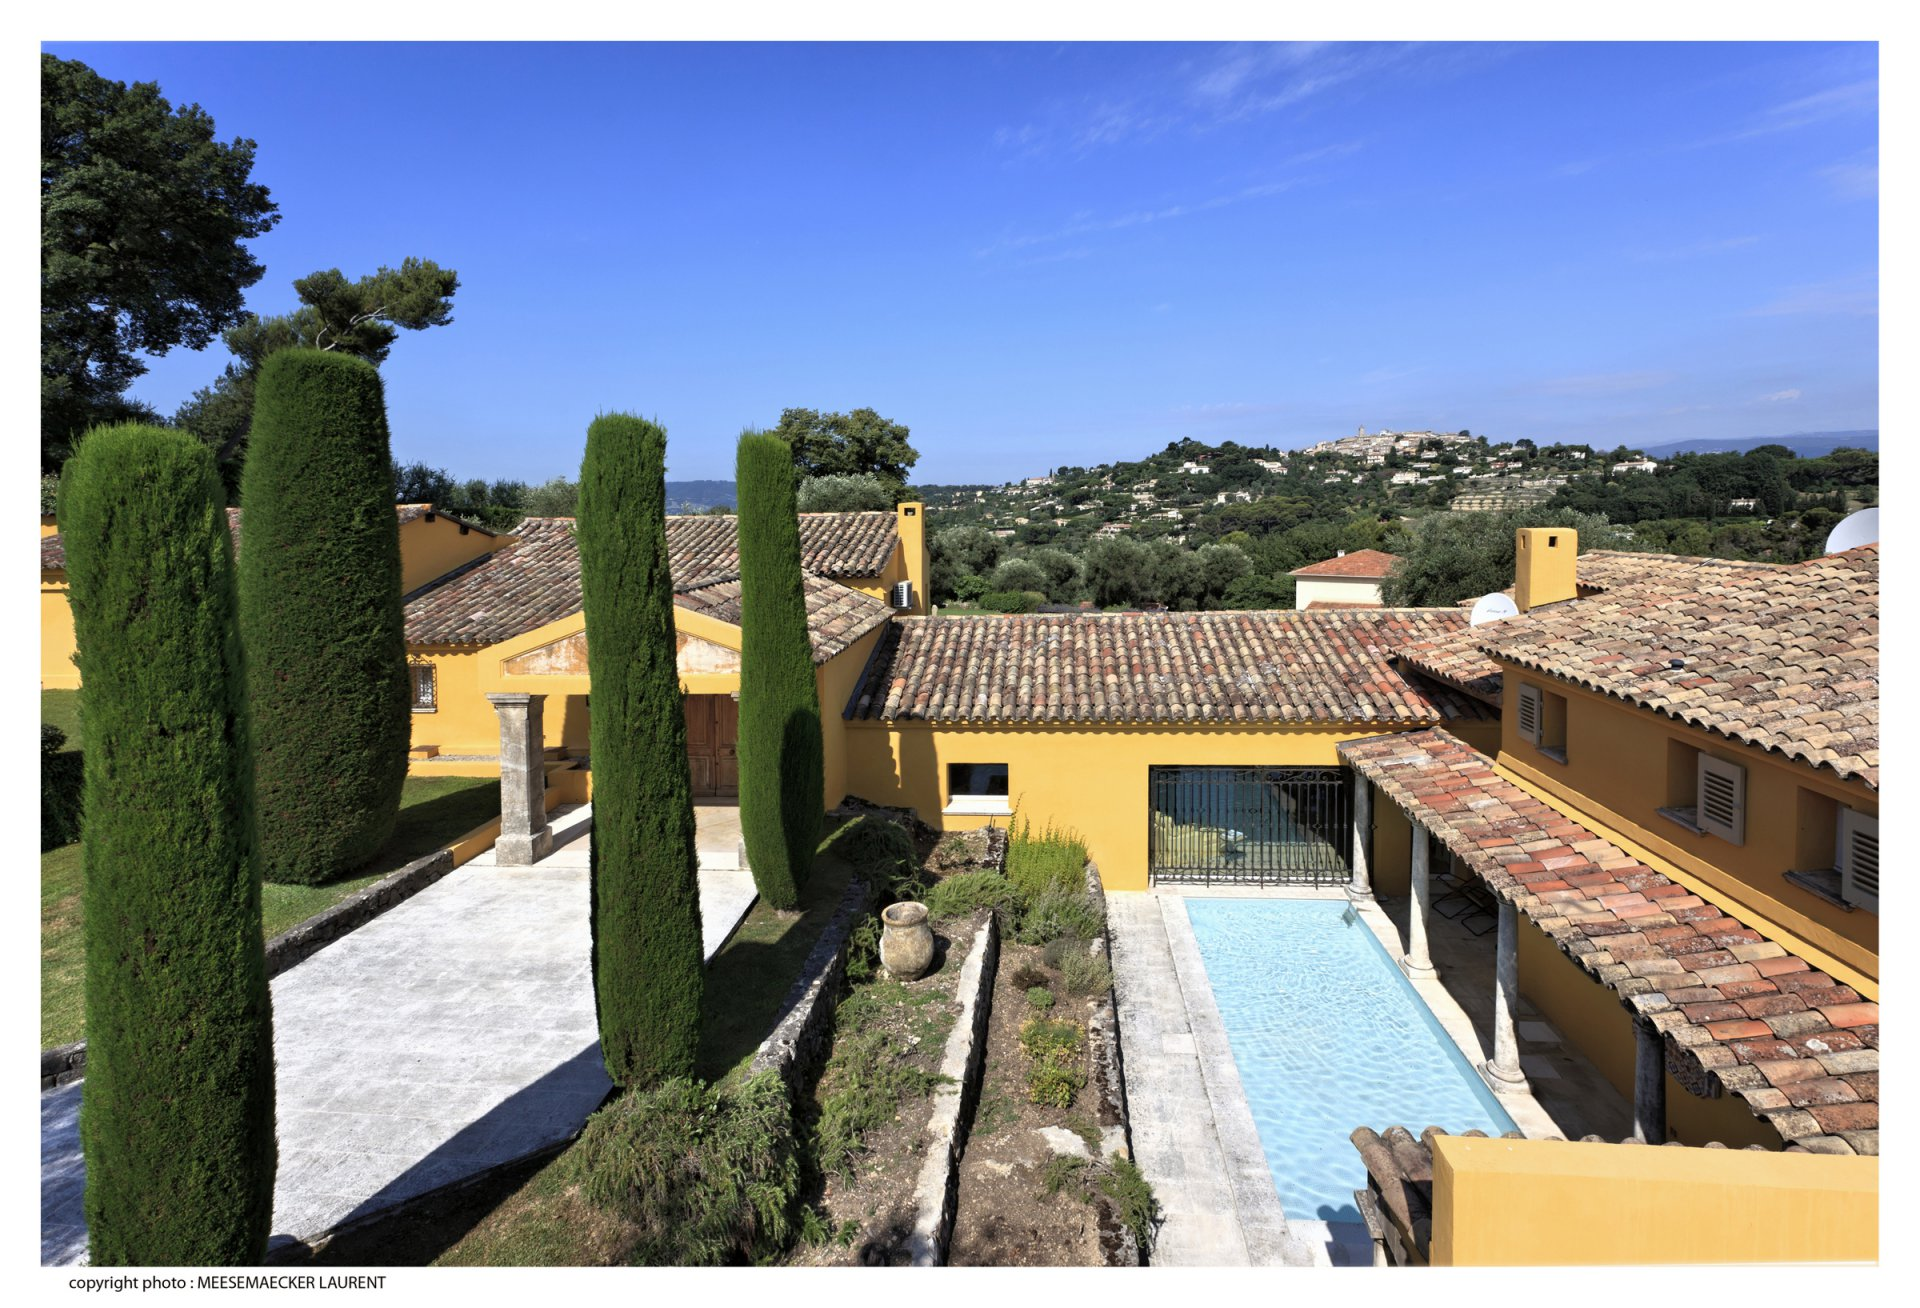 Property with pool and tennis court in gated Domaine.